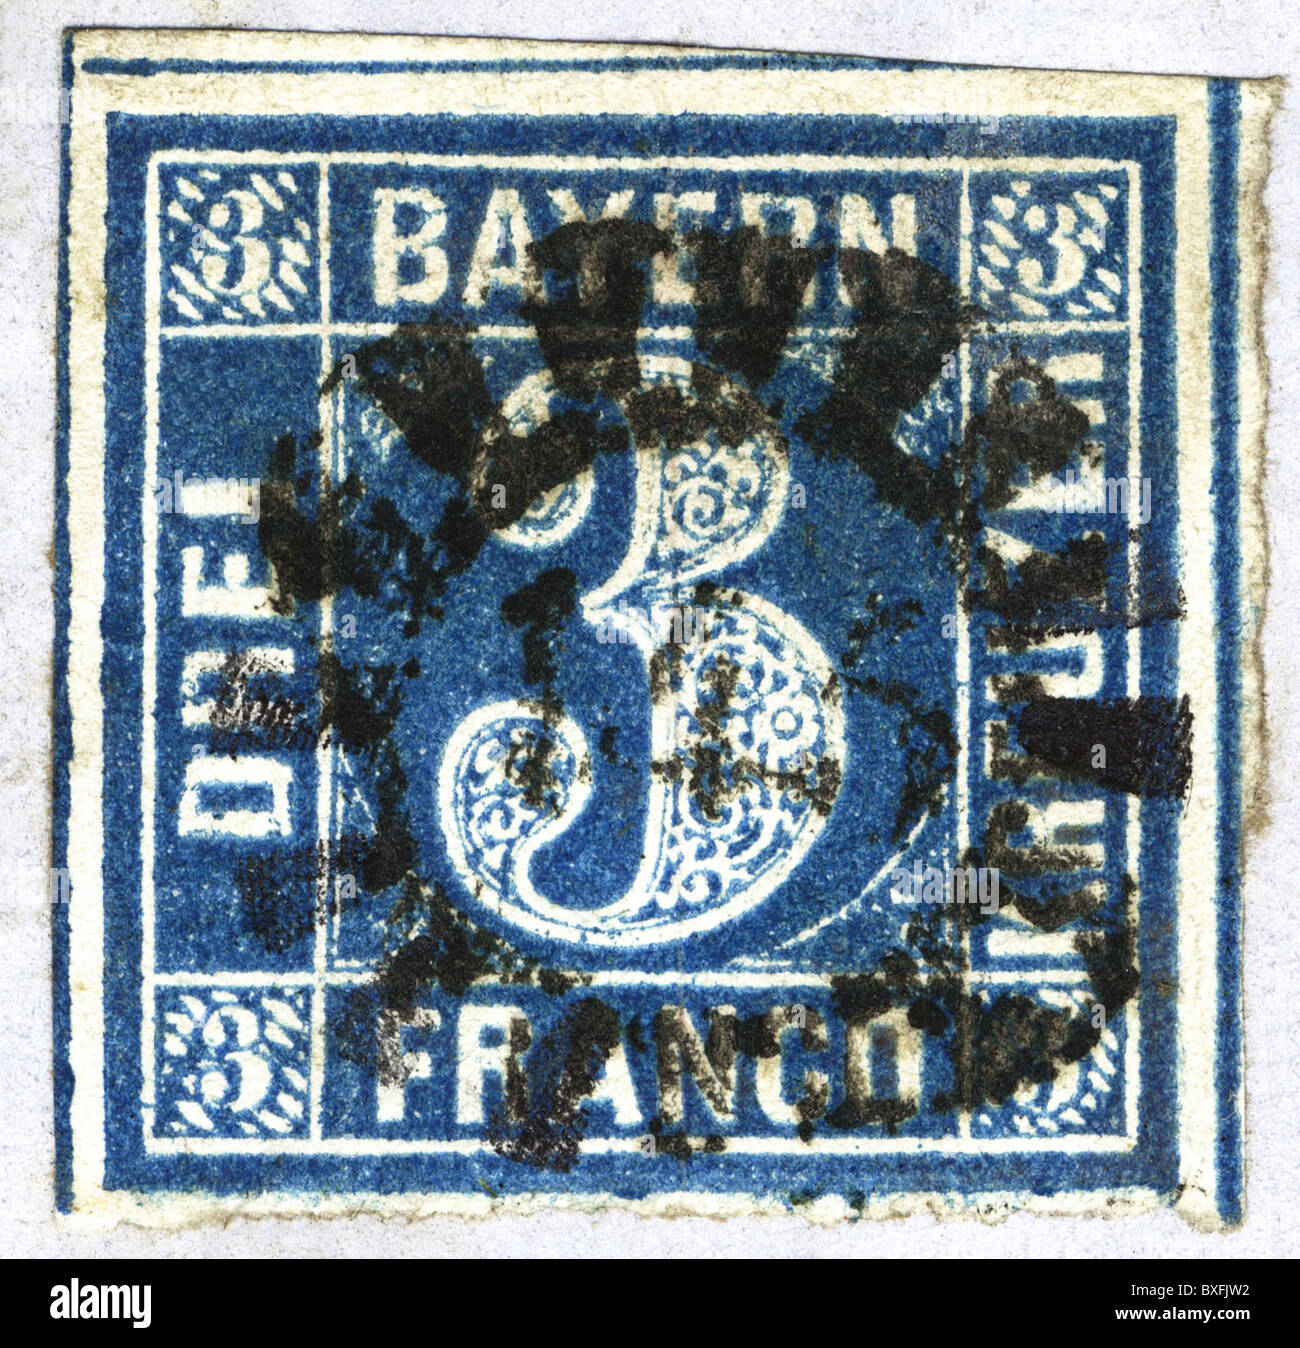 mail / post, stamps, sliced stamp, Bavaria, 1865, 1860s, 19th century, historic, historical, postage, Postage paid, - Stock Image